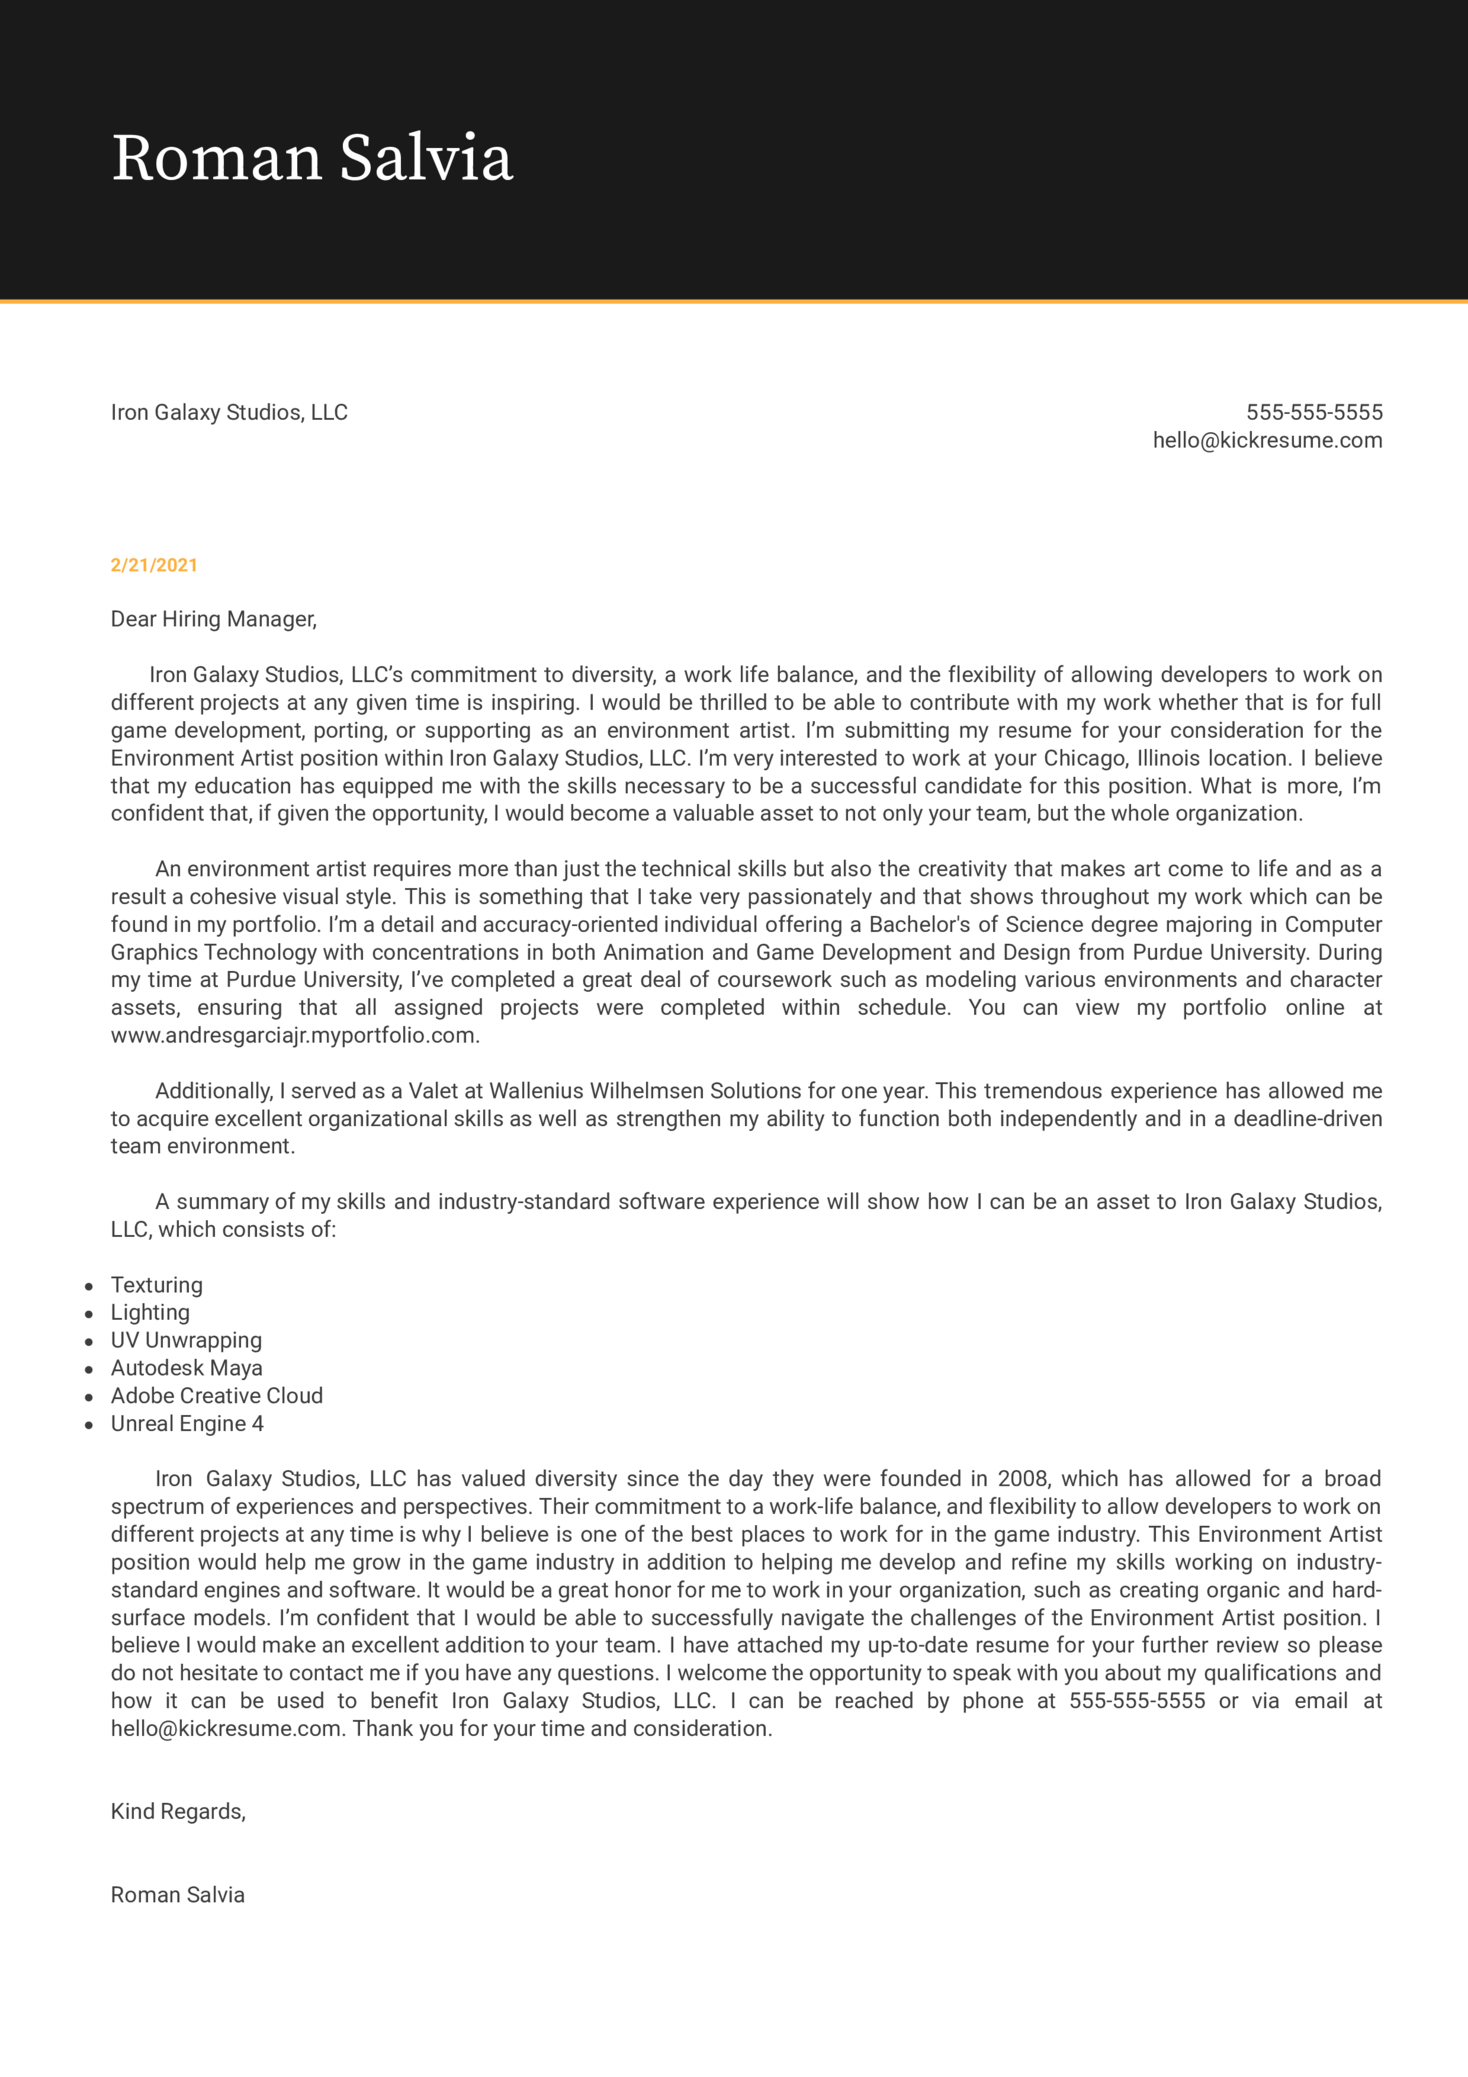 Environment Artist at Iron Galaxy Studios Cover Letter Sample